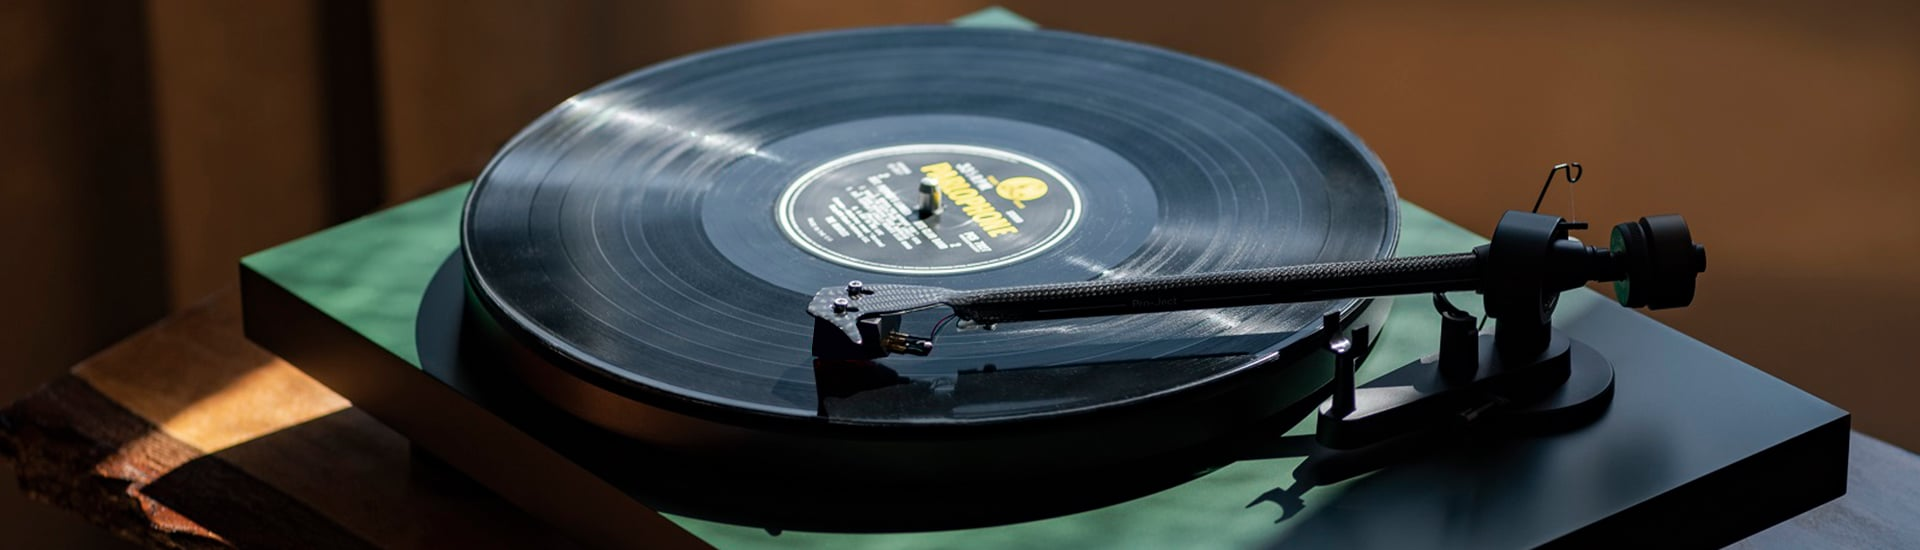 Review: Pro-Ject Debut Carbon EVO vs. DC Turntable